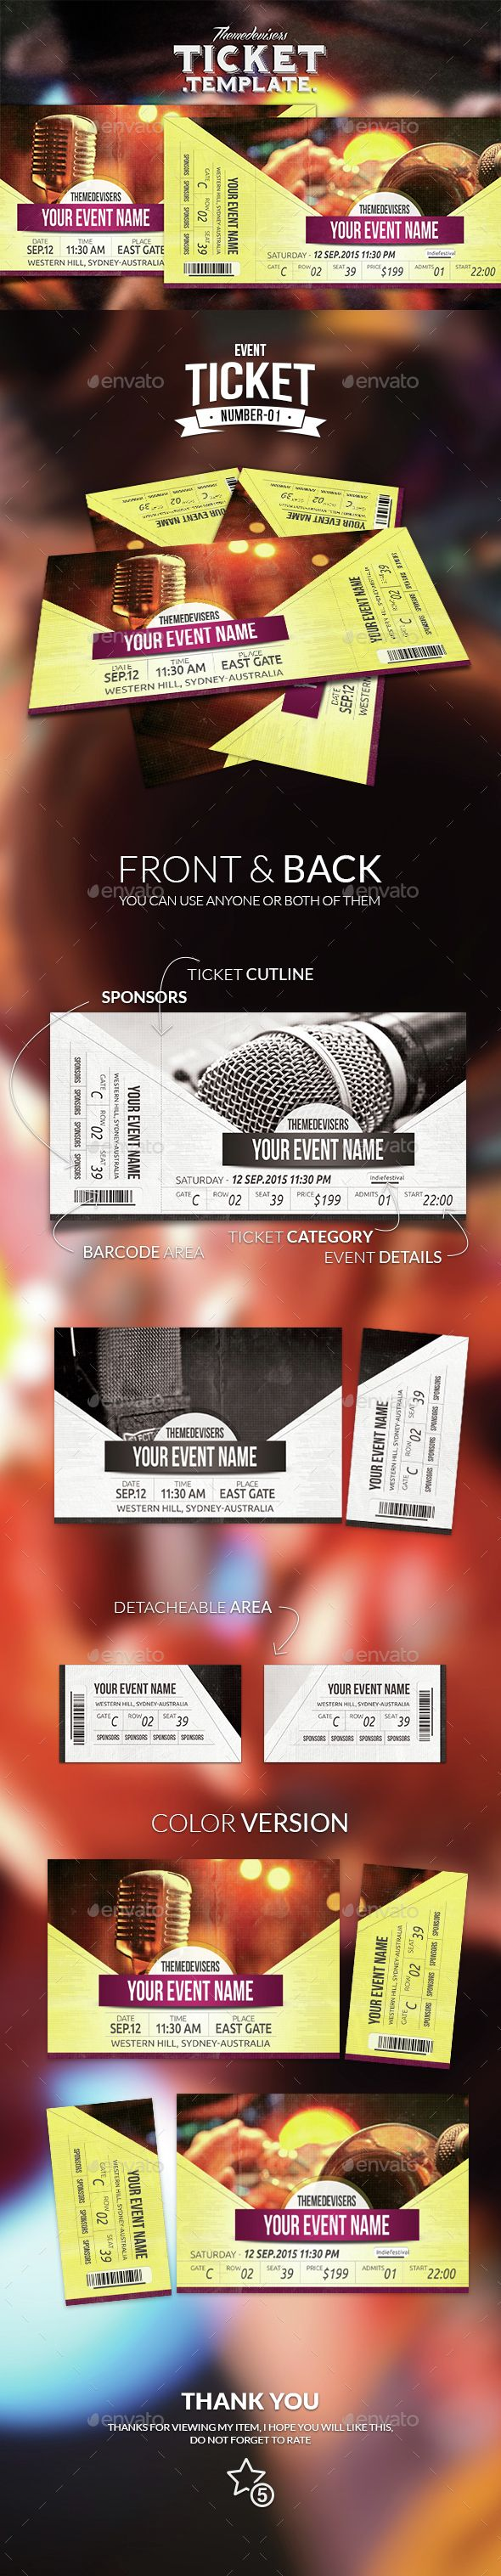 Exelent Event Ticket Ideas Ornament Administrative Officer Cover - Event ticket template photoshop